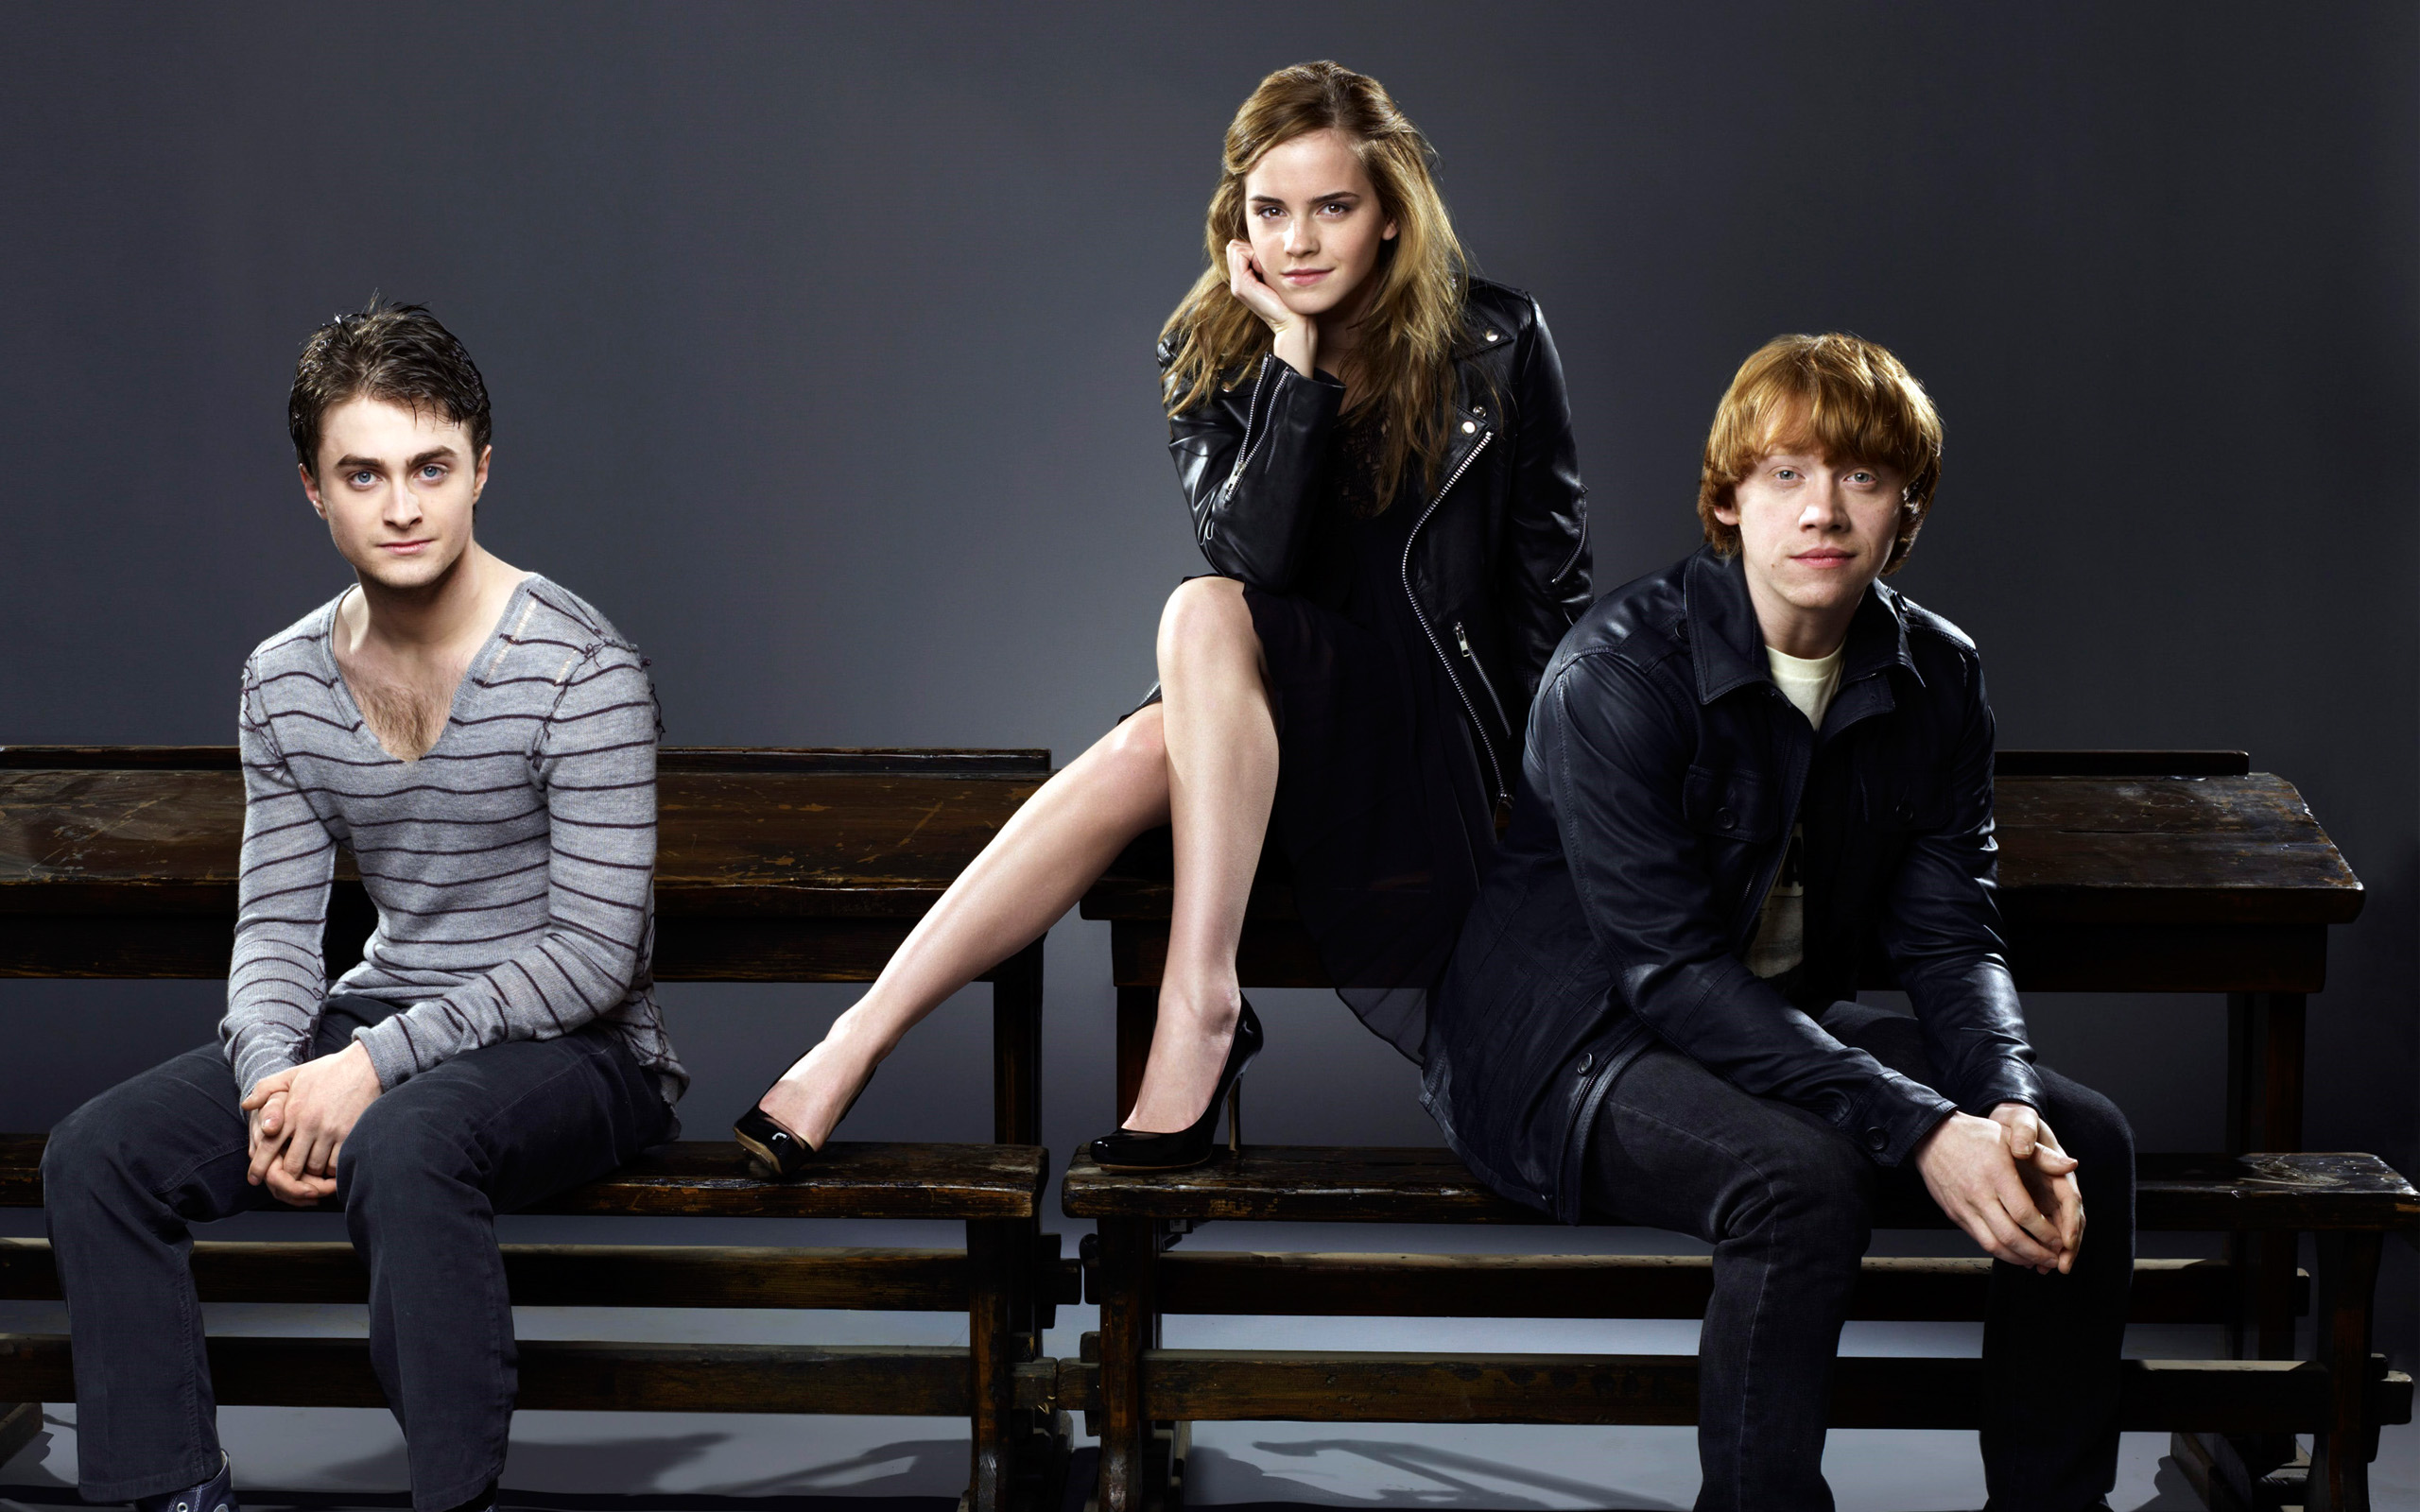 Emma Watson With Harry & Ron